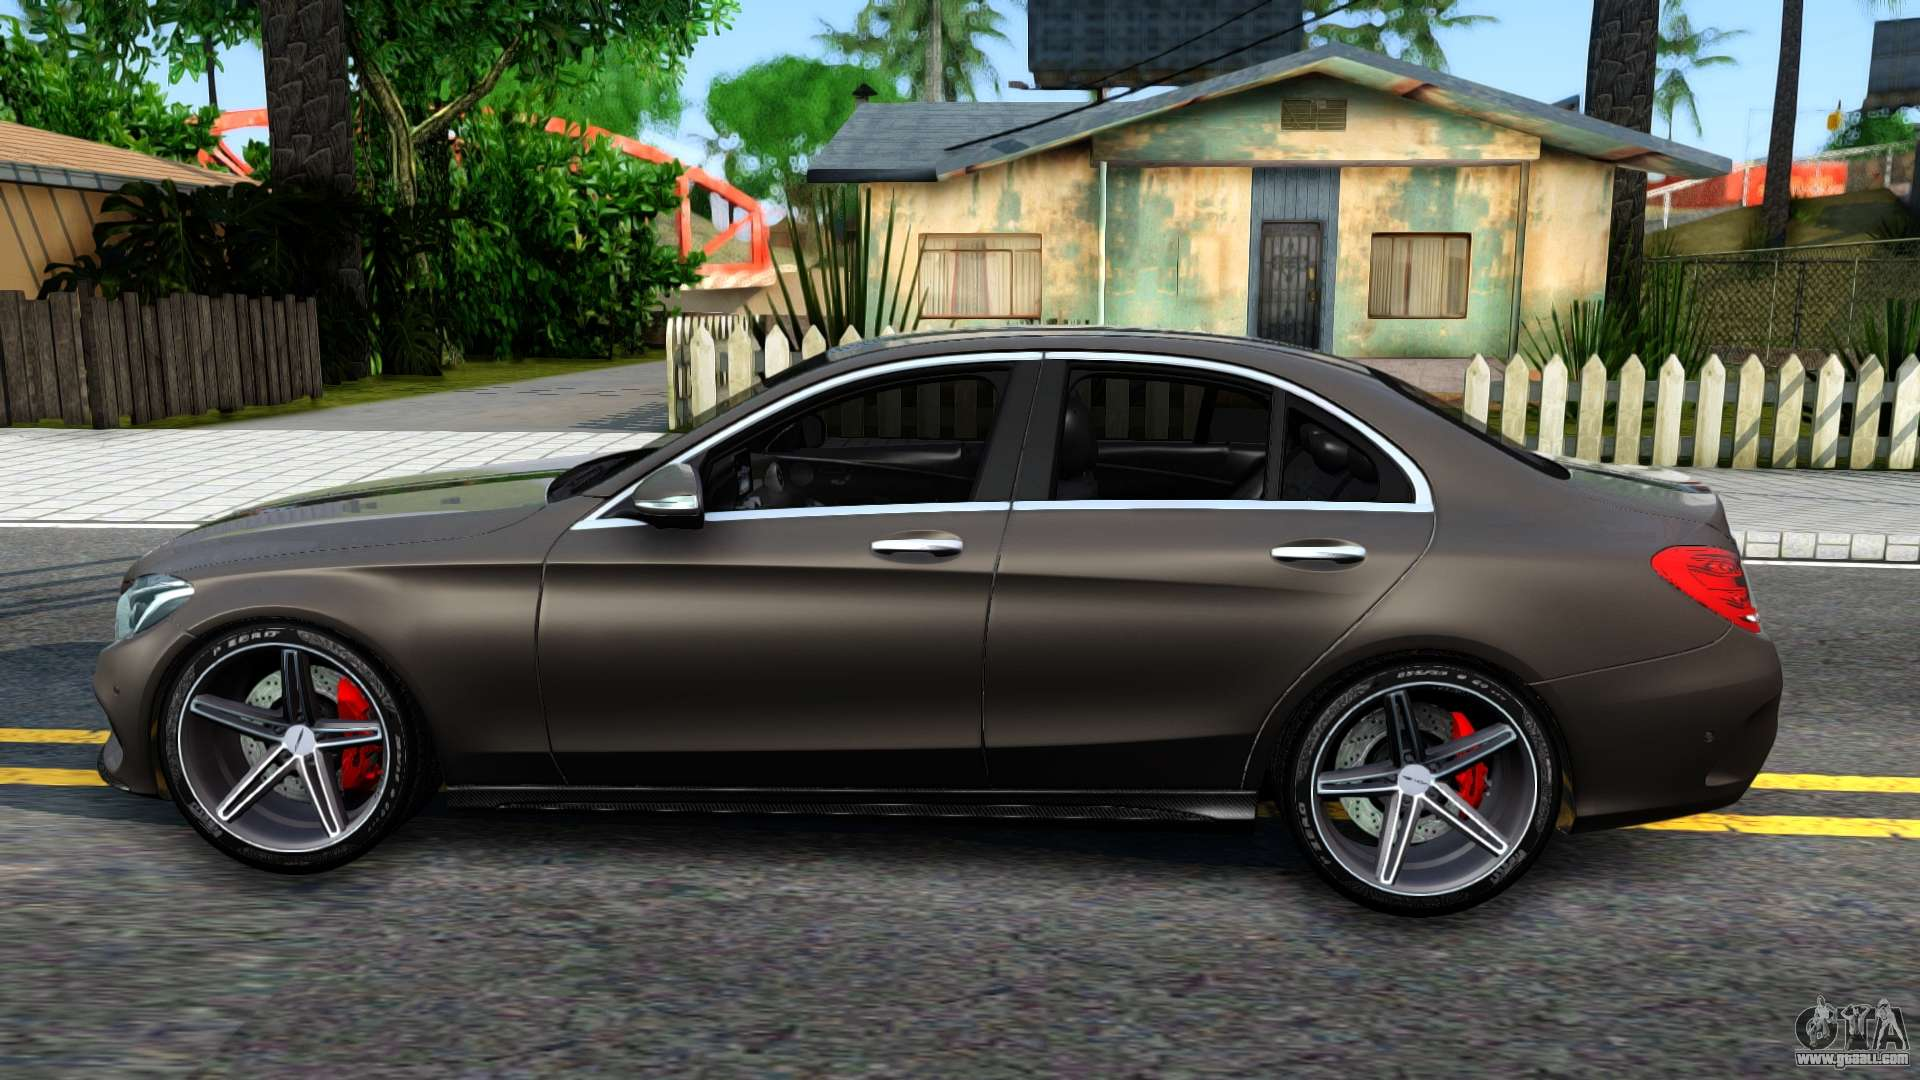 Mercedes benz c250 amg edition for gta san andreas for Mercedes benz c 250